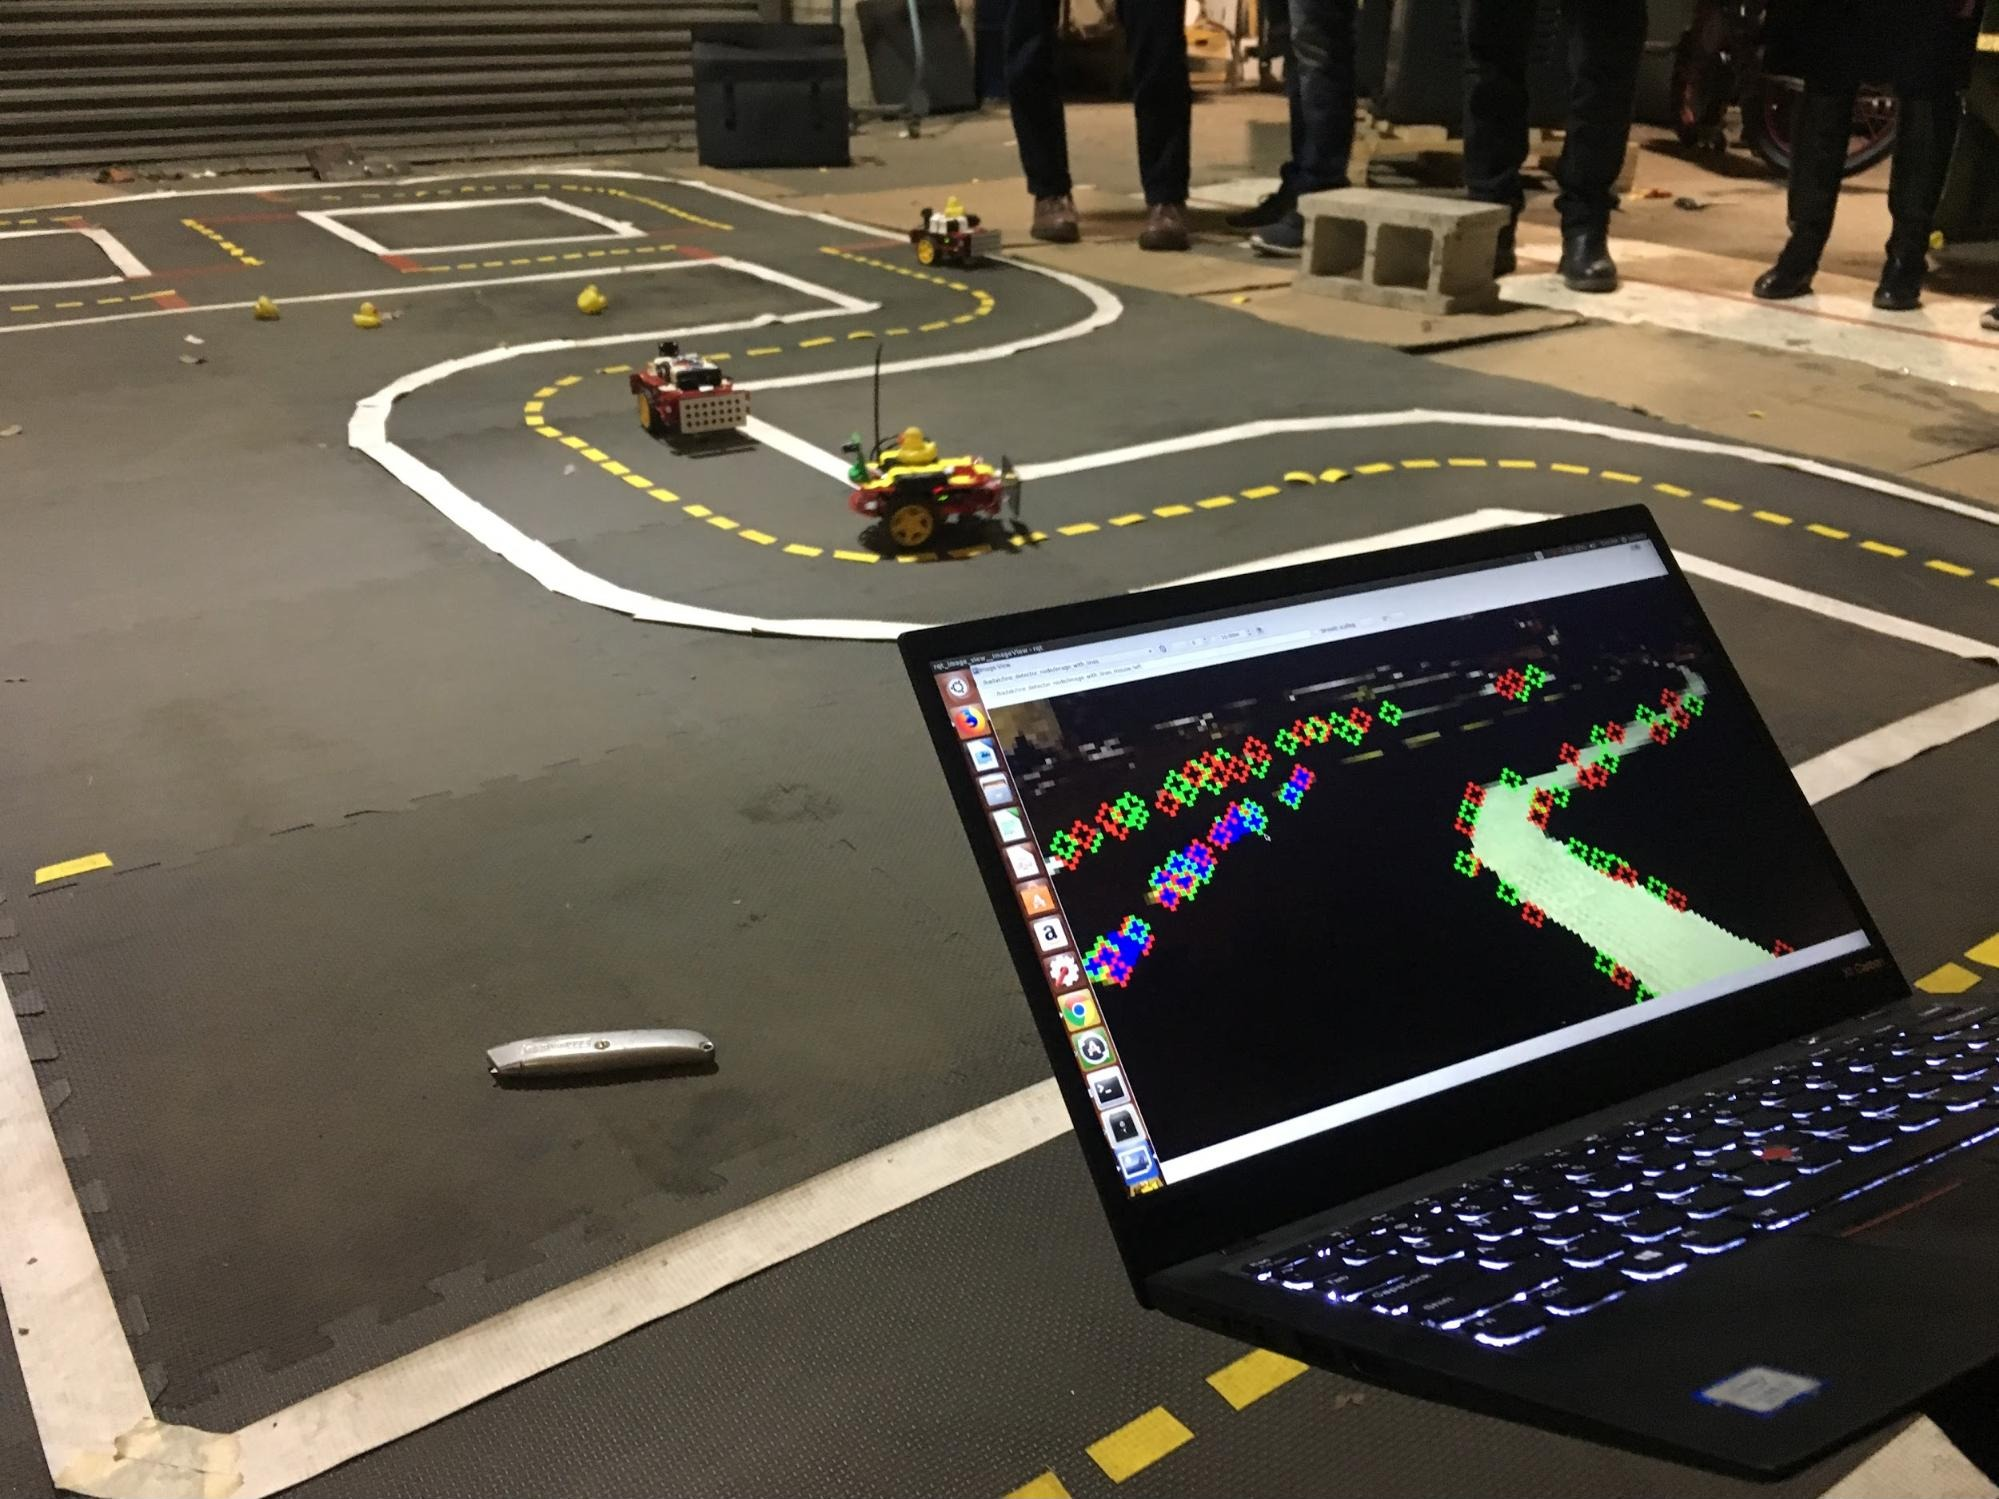 At UIC, Students Study 'Unstoppable' Technology Of Self-Driving Cars